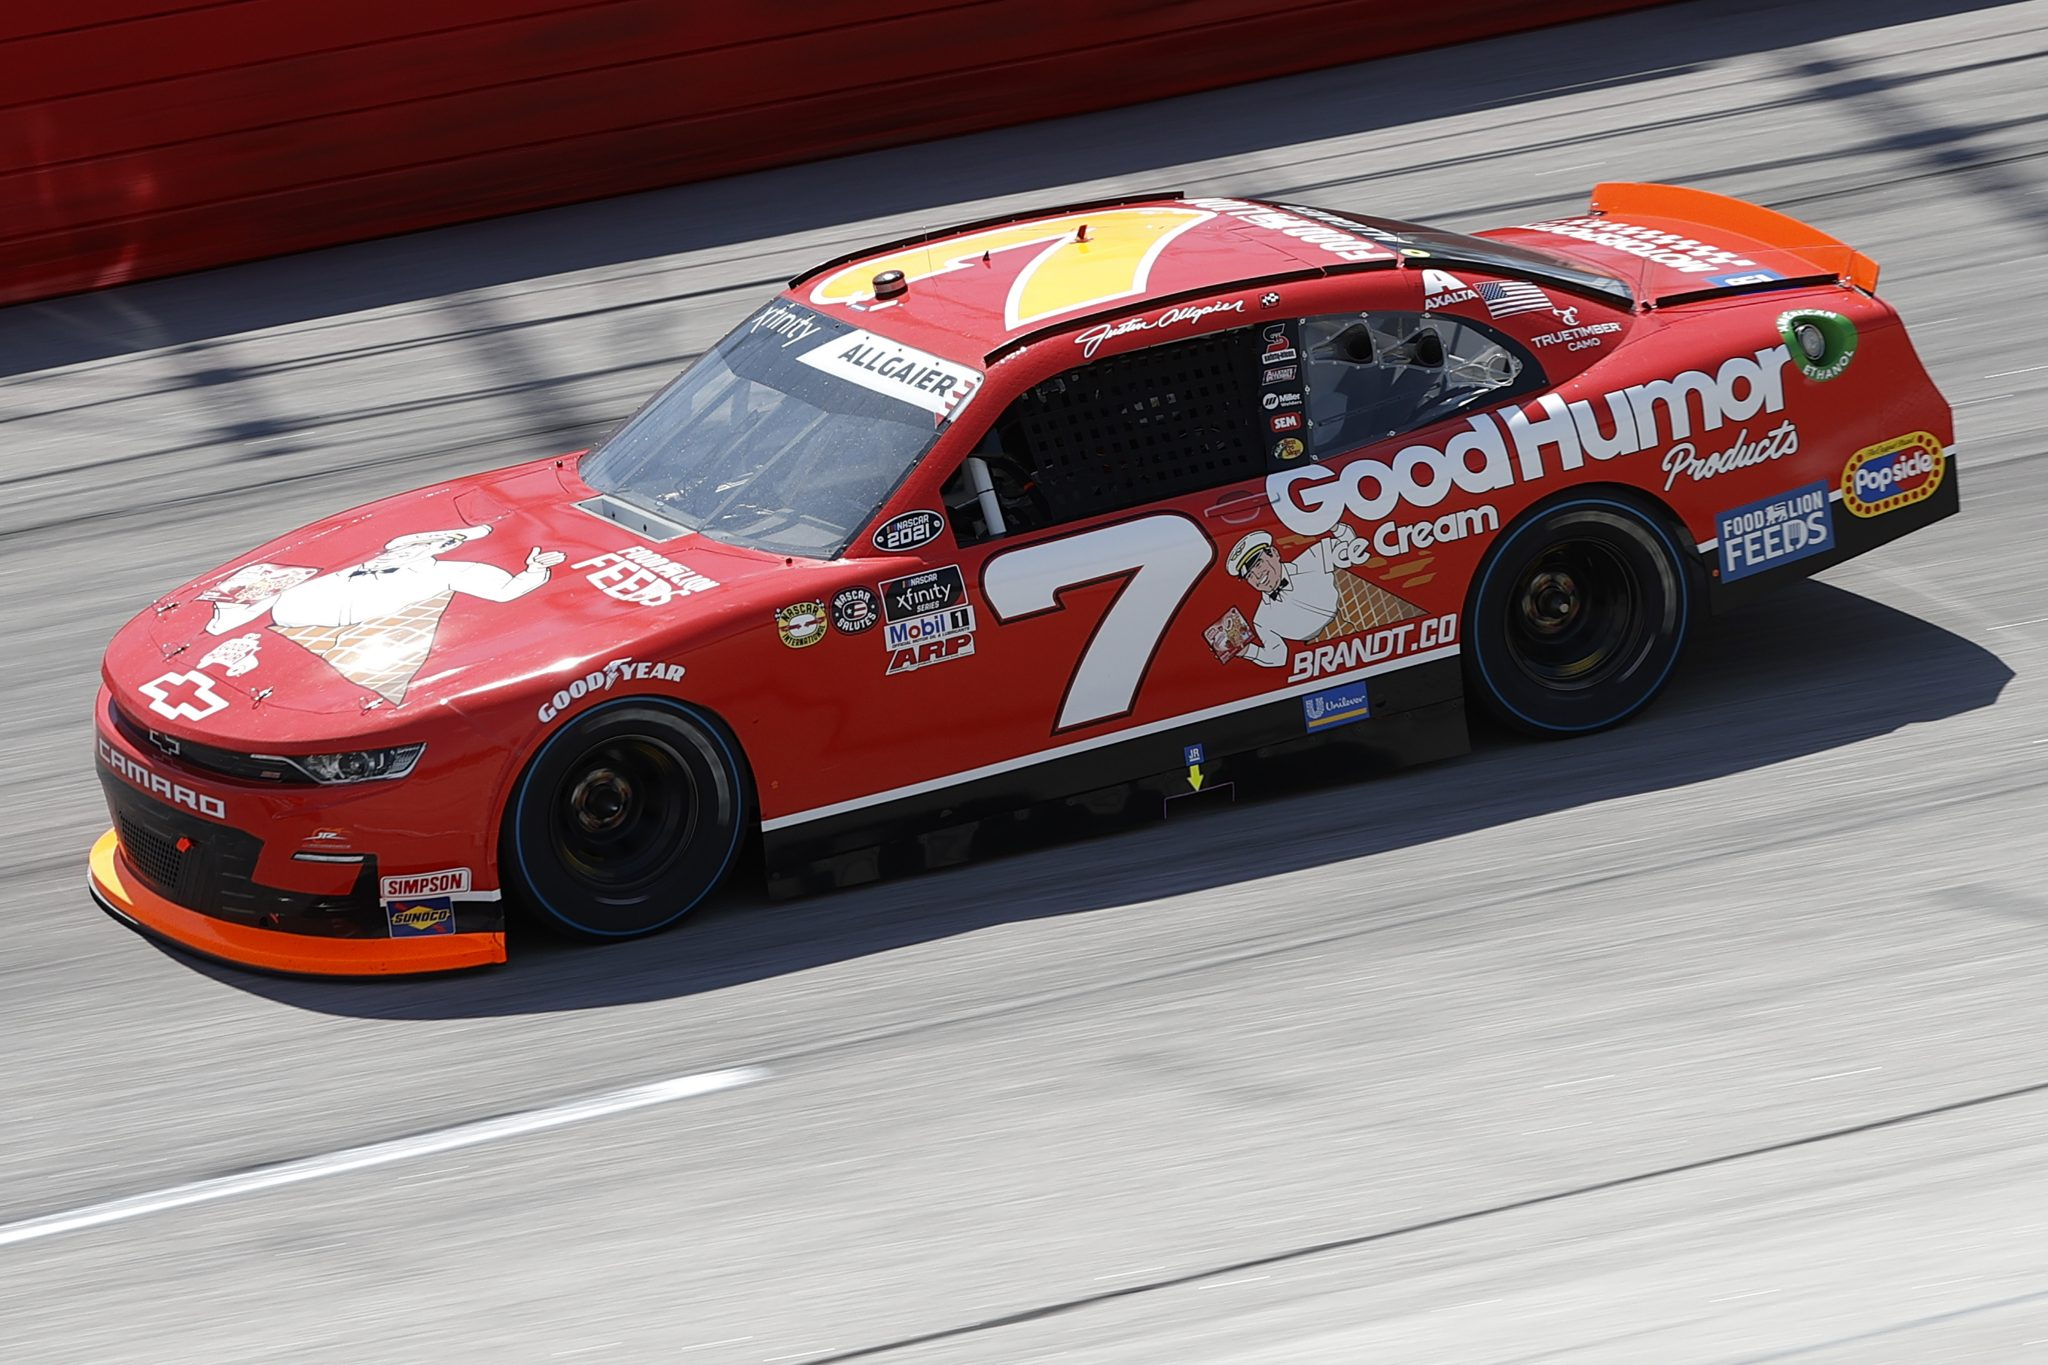 DARLINGTON, SOUTH CAROLINA - MAY 08: Justin Allgaier, driver of the #7 Good Humor Ice Cream Chevrolet, drives during the NASCAR Xfinity Series Steakhouse Elite 200 at Darlington Raceway on May 08, 2021 in Darlington, South Carolina. (Photo by Chris Graythen/Getty Images) | Getty Images